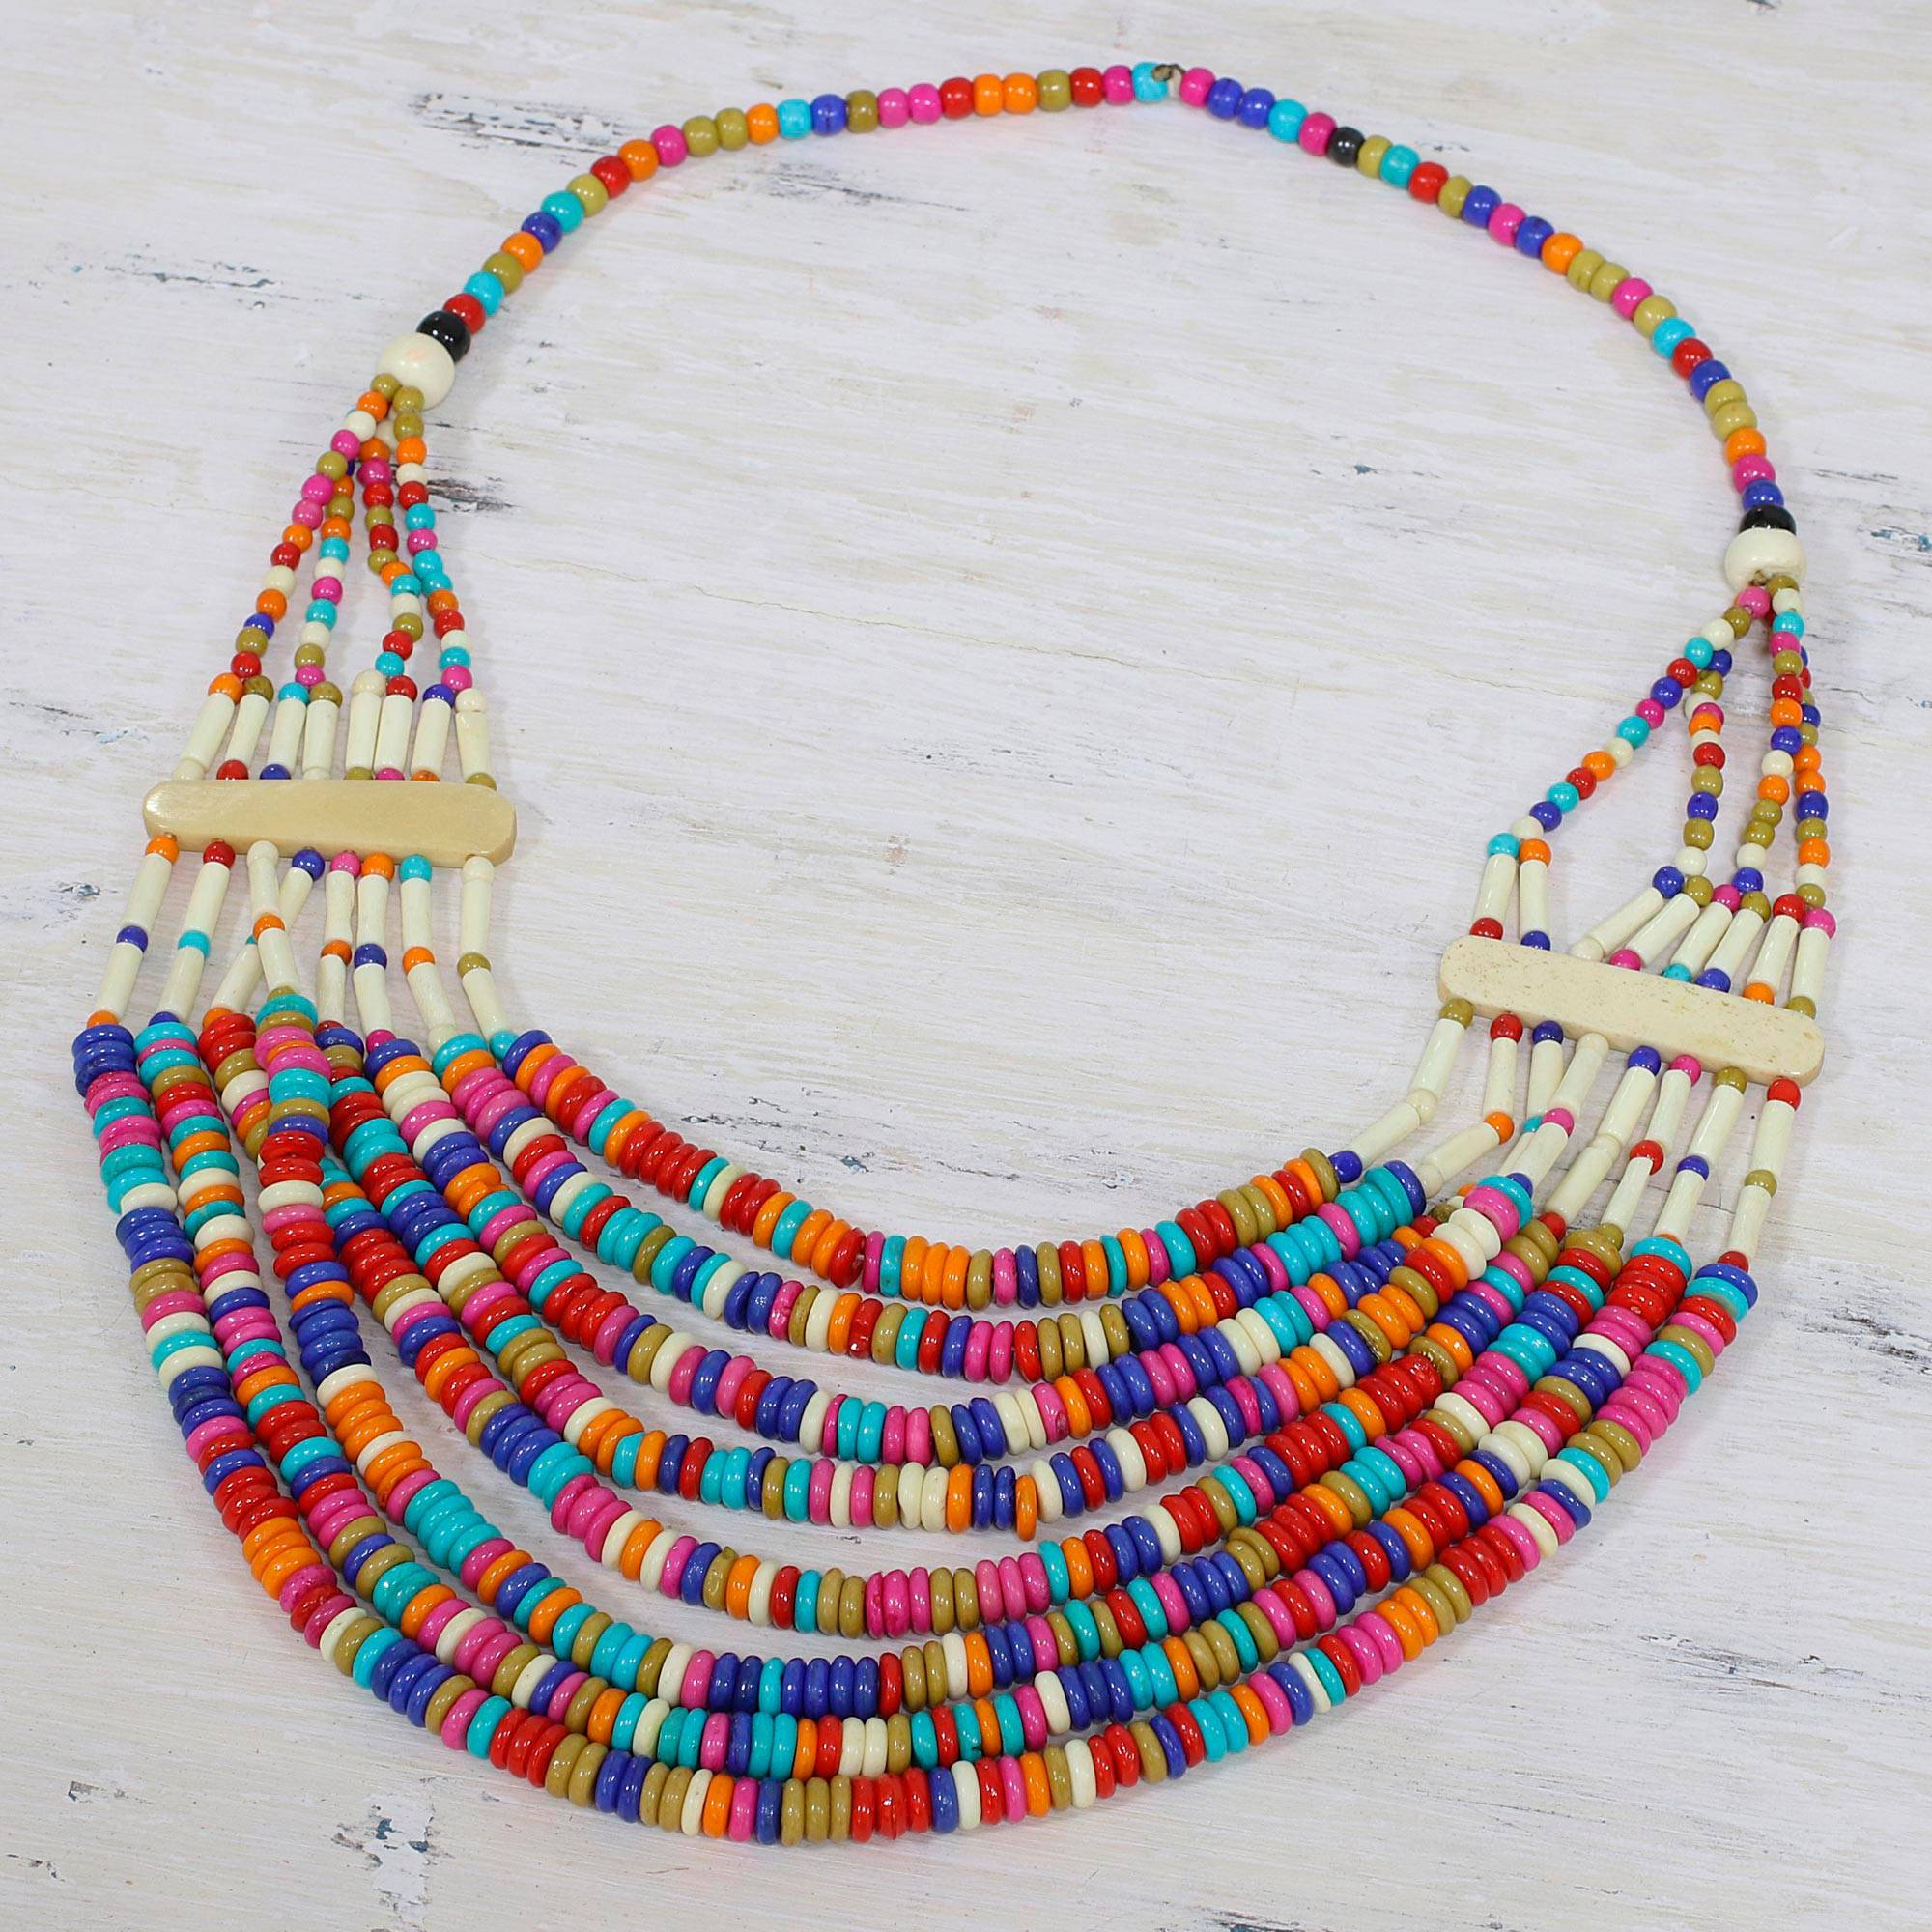 Ecstatic Celebration Colorful Beaded Bone Statement Necklace from India The Perfect Necklace